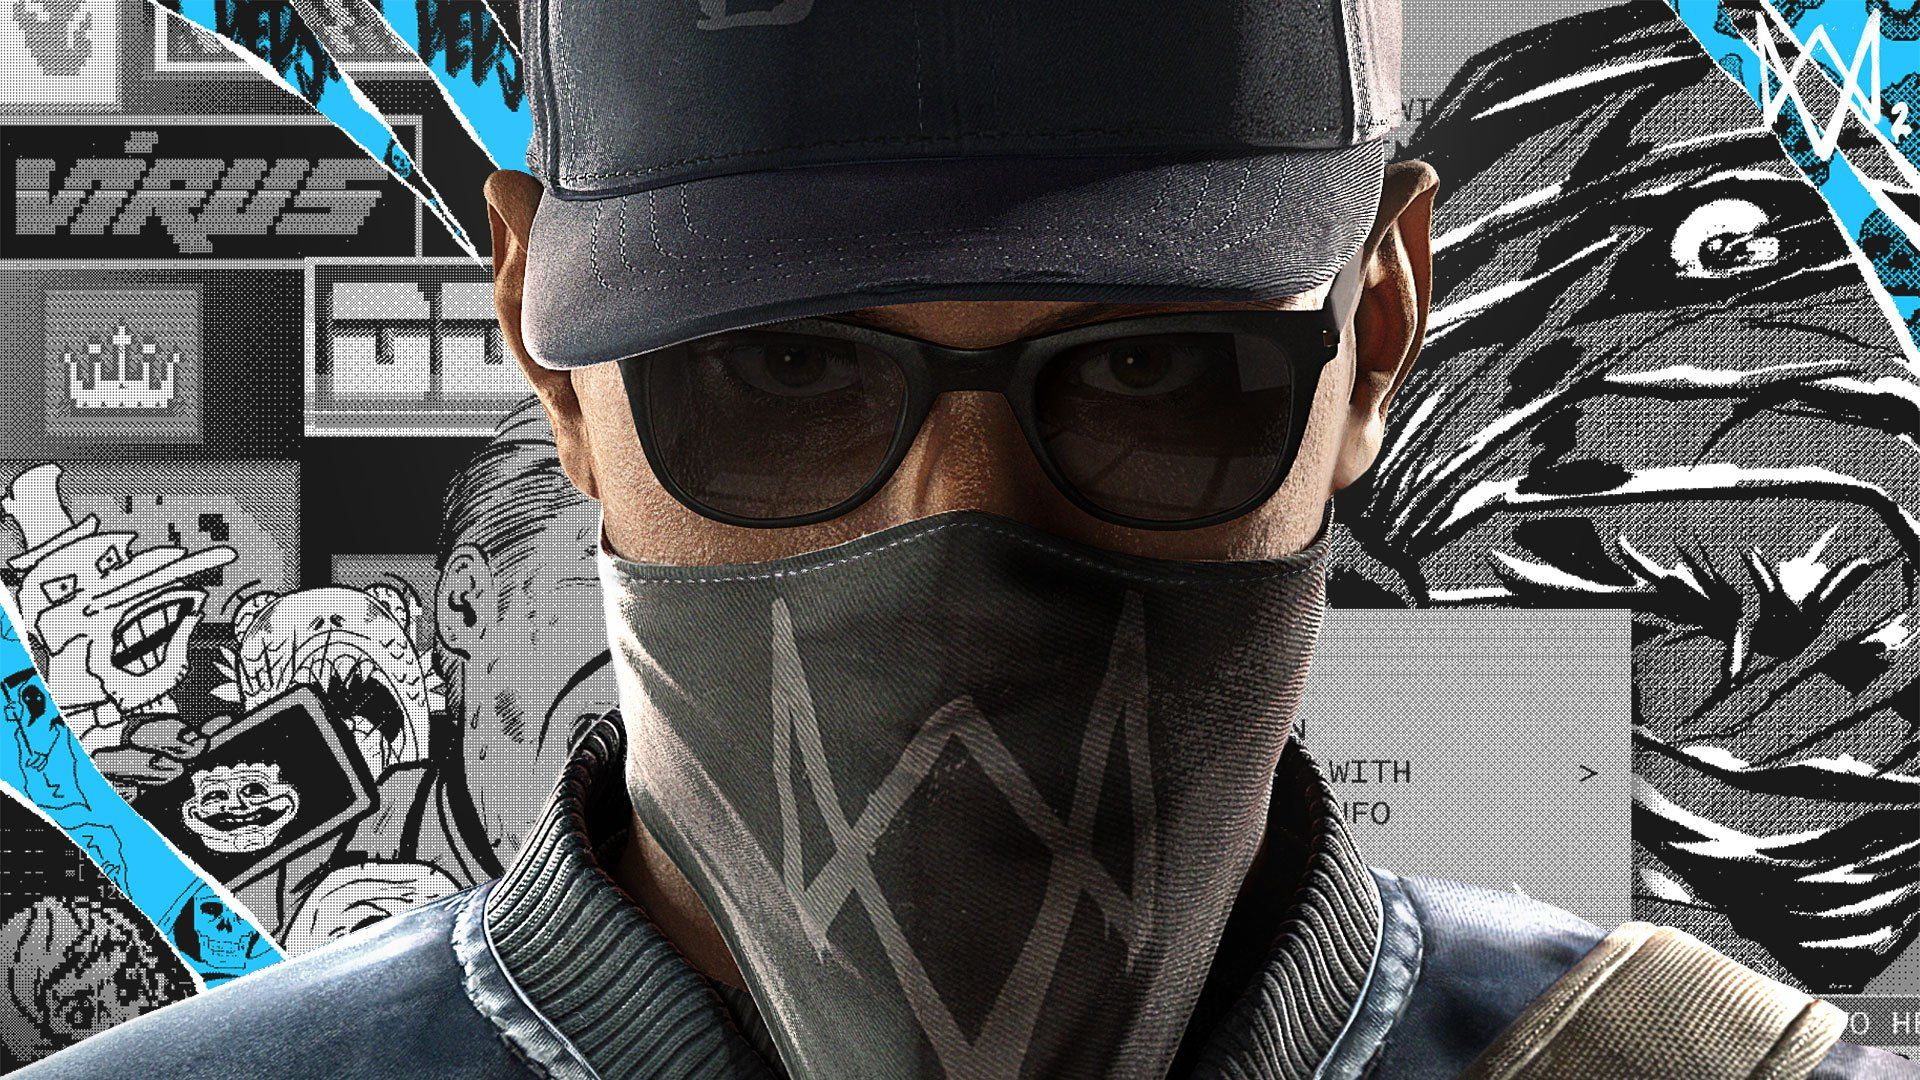 watch-dogs-2-wallpapers-marcus-close-up-pic